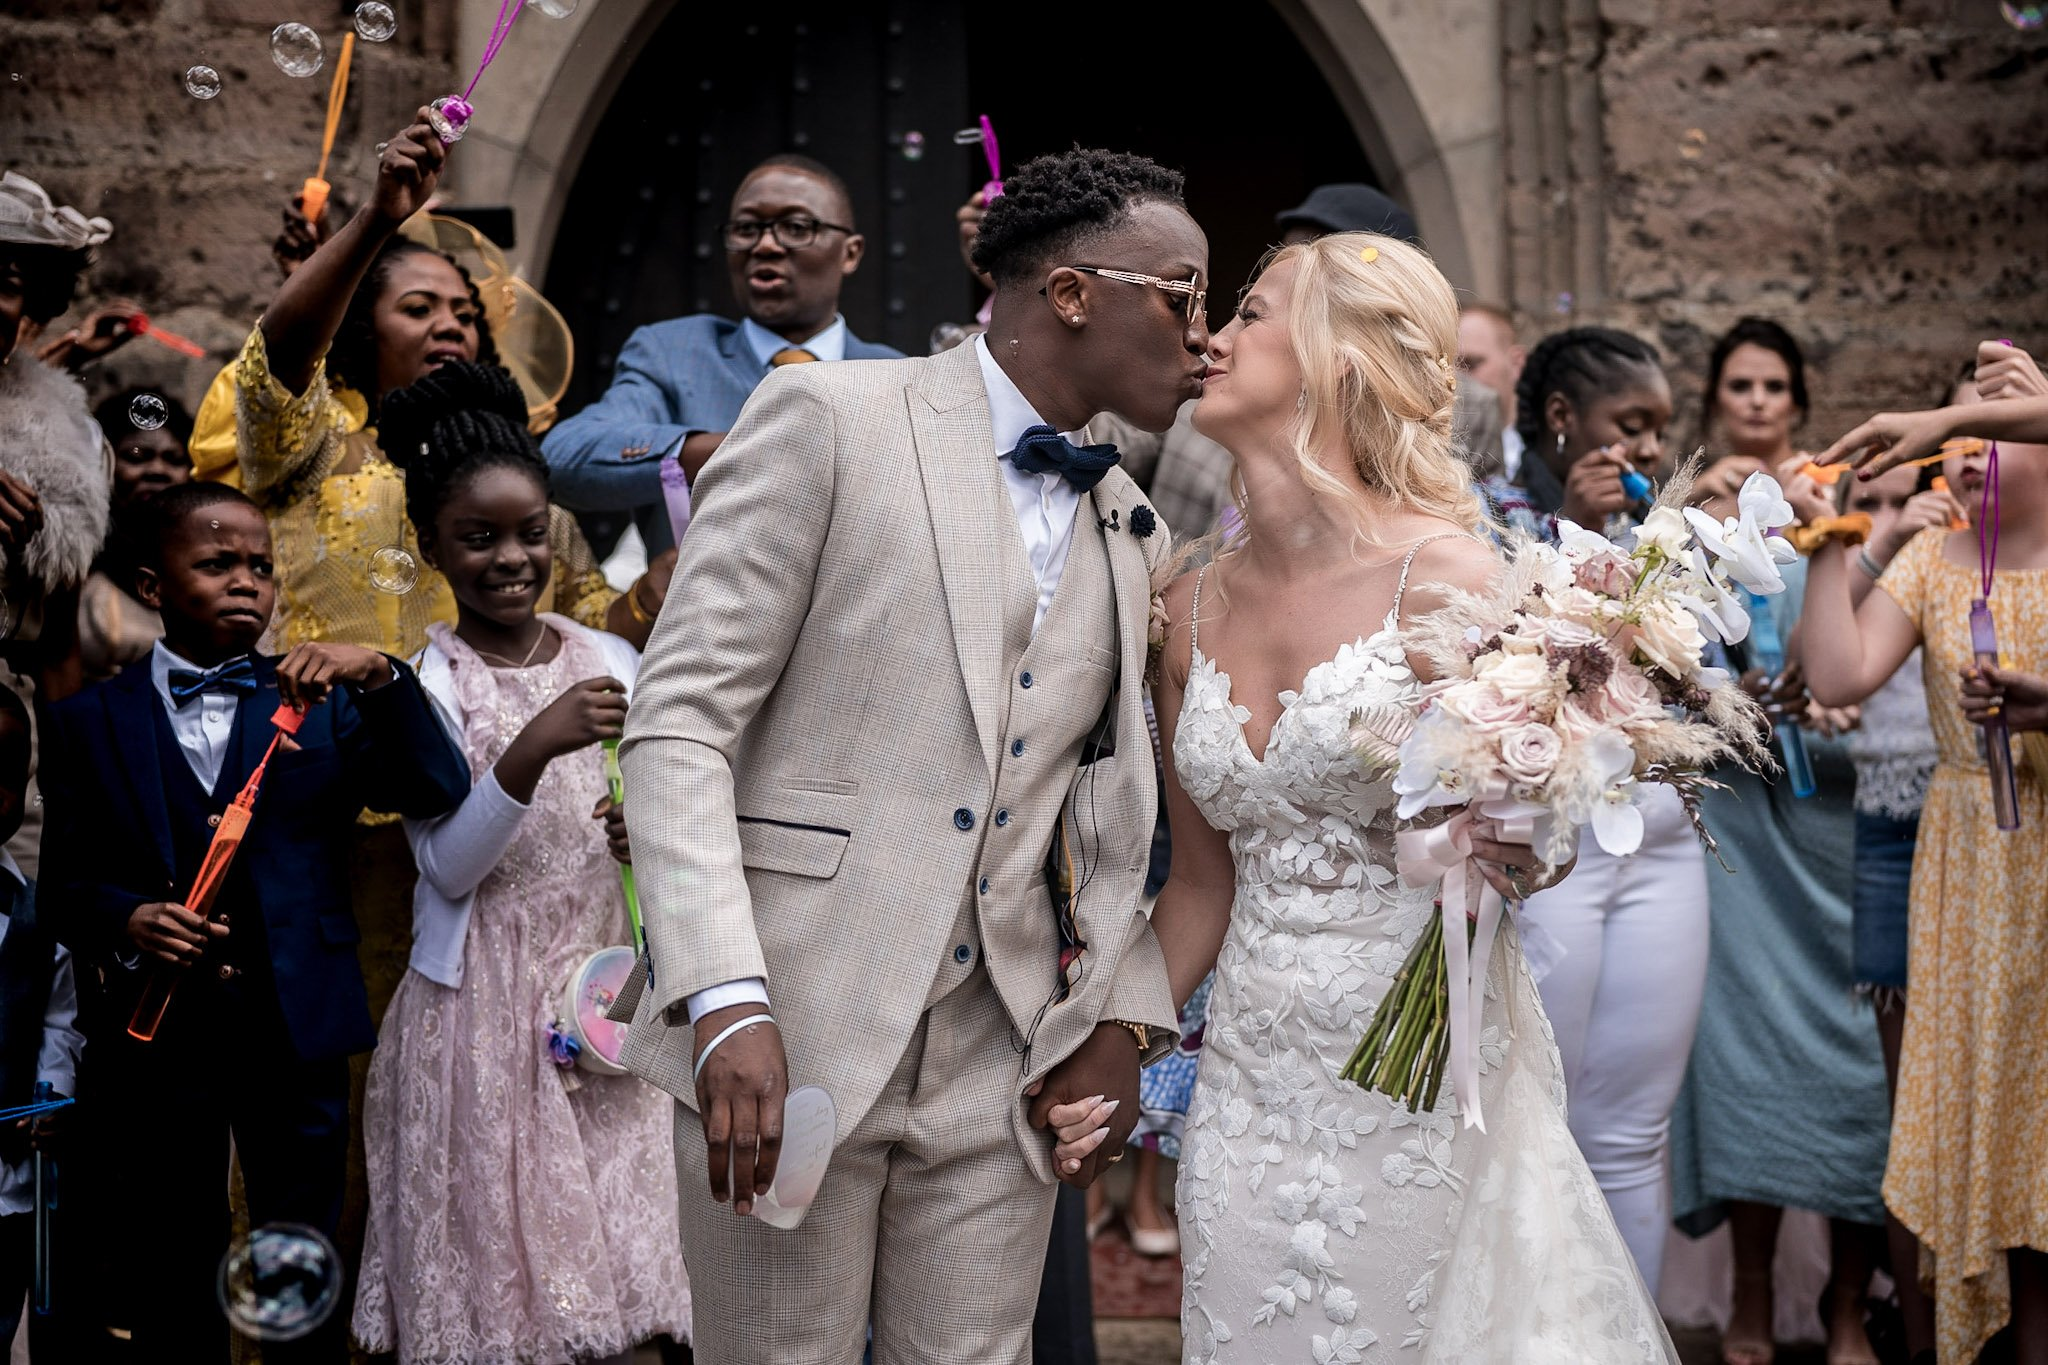 Your Favourite Frame YFFUK Mwasuku St Michaels Church Appleby Magna bride and groom on the front steps of the church getting bubbles blown over them with some confetti as well